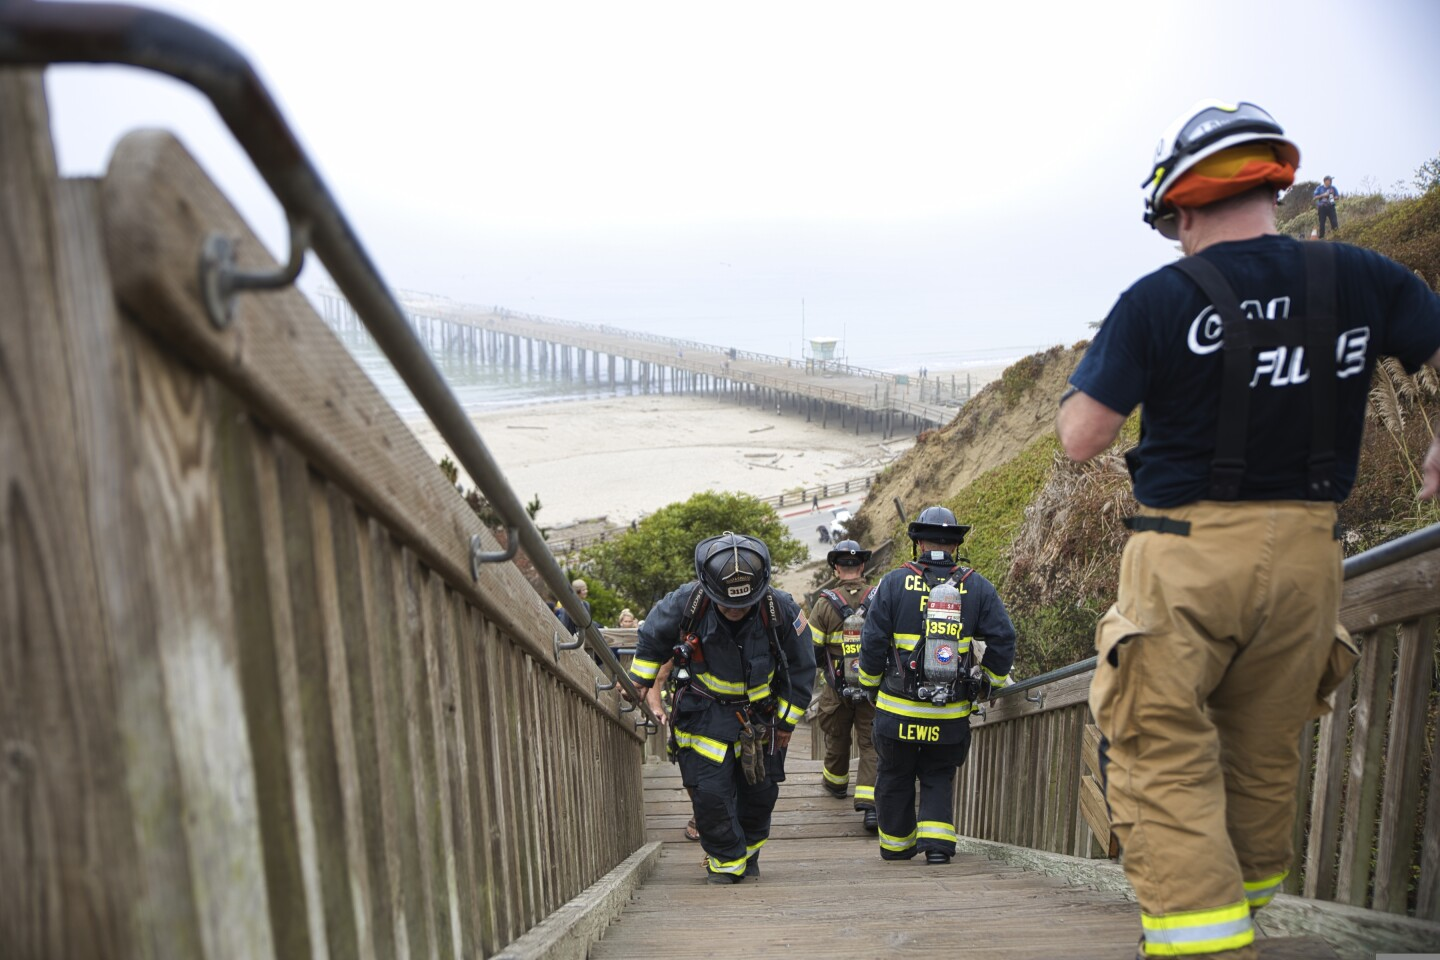 Firefighters walk up and down the Seacliff State Beach stairs as part of a 9/11 anniversary ceremony.